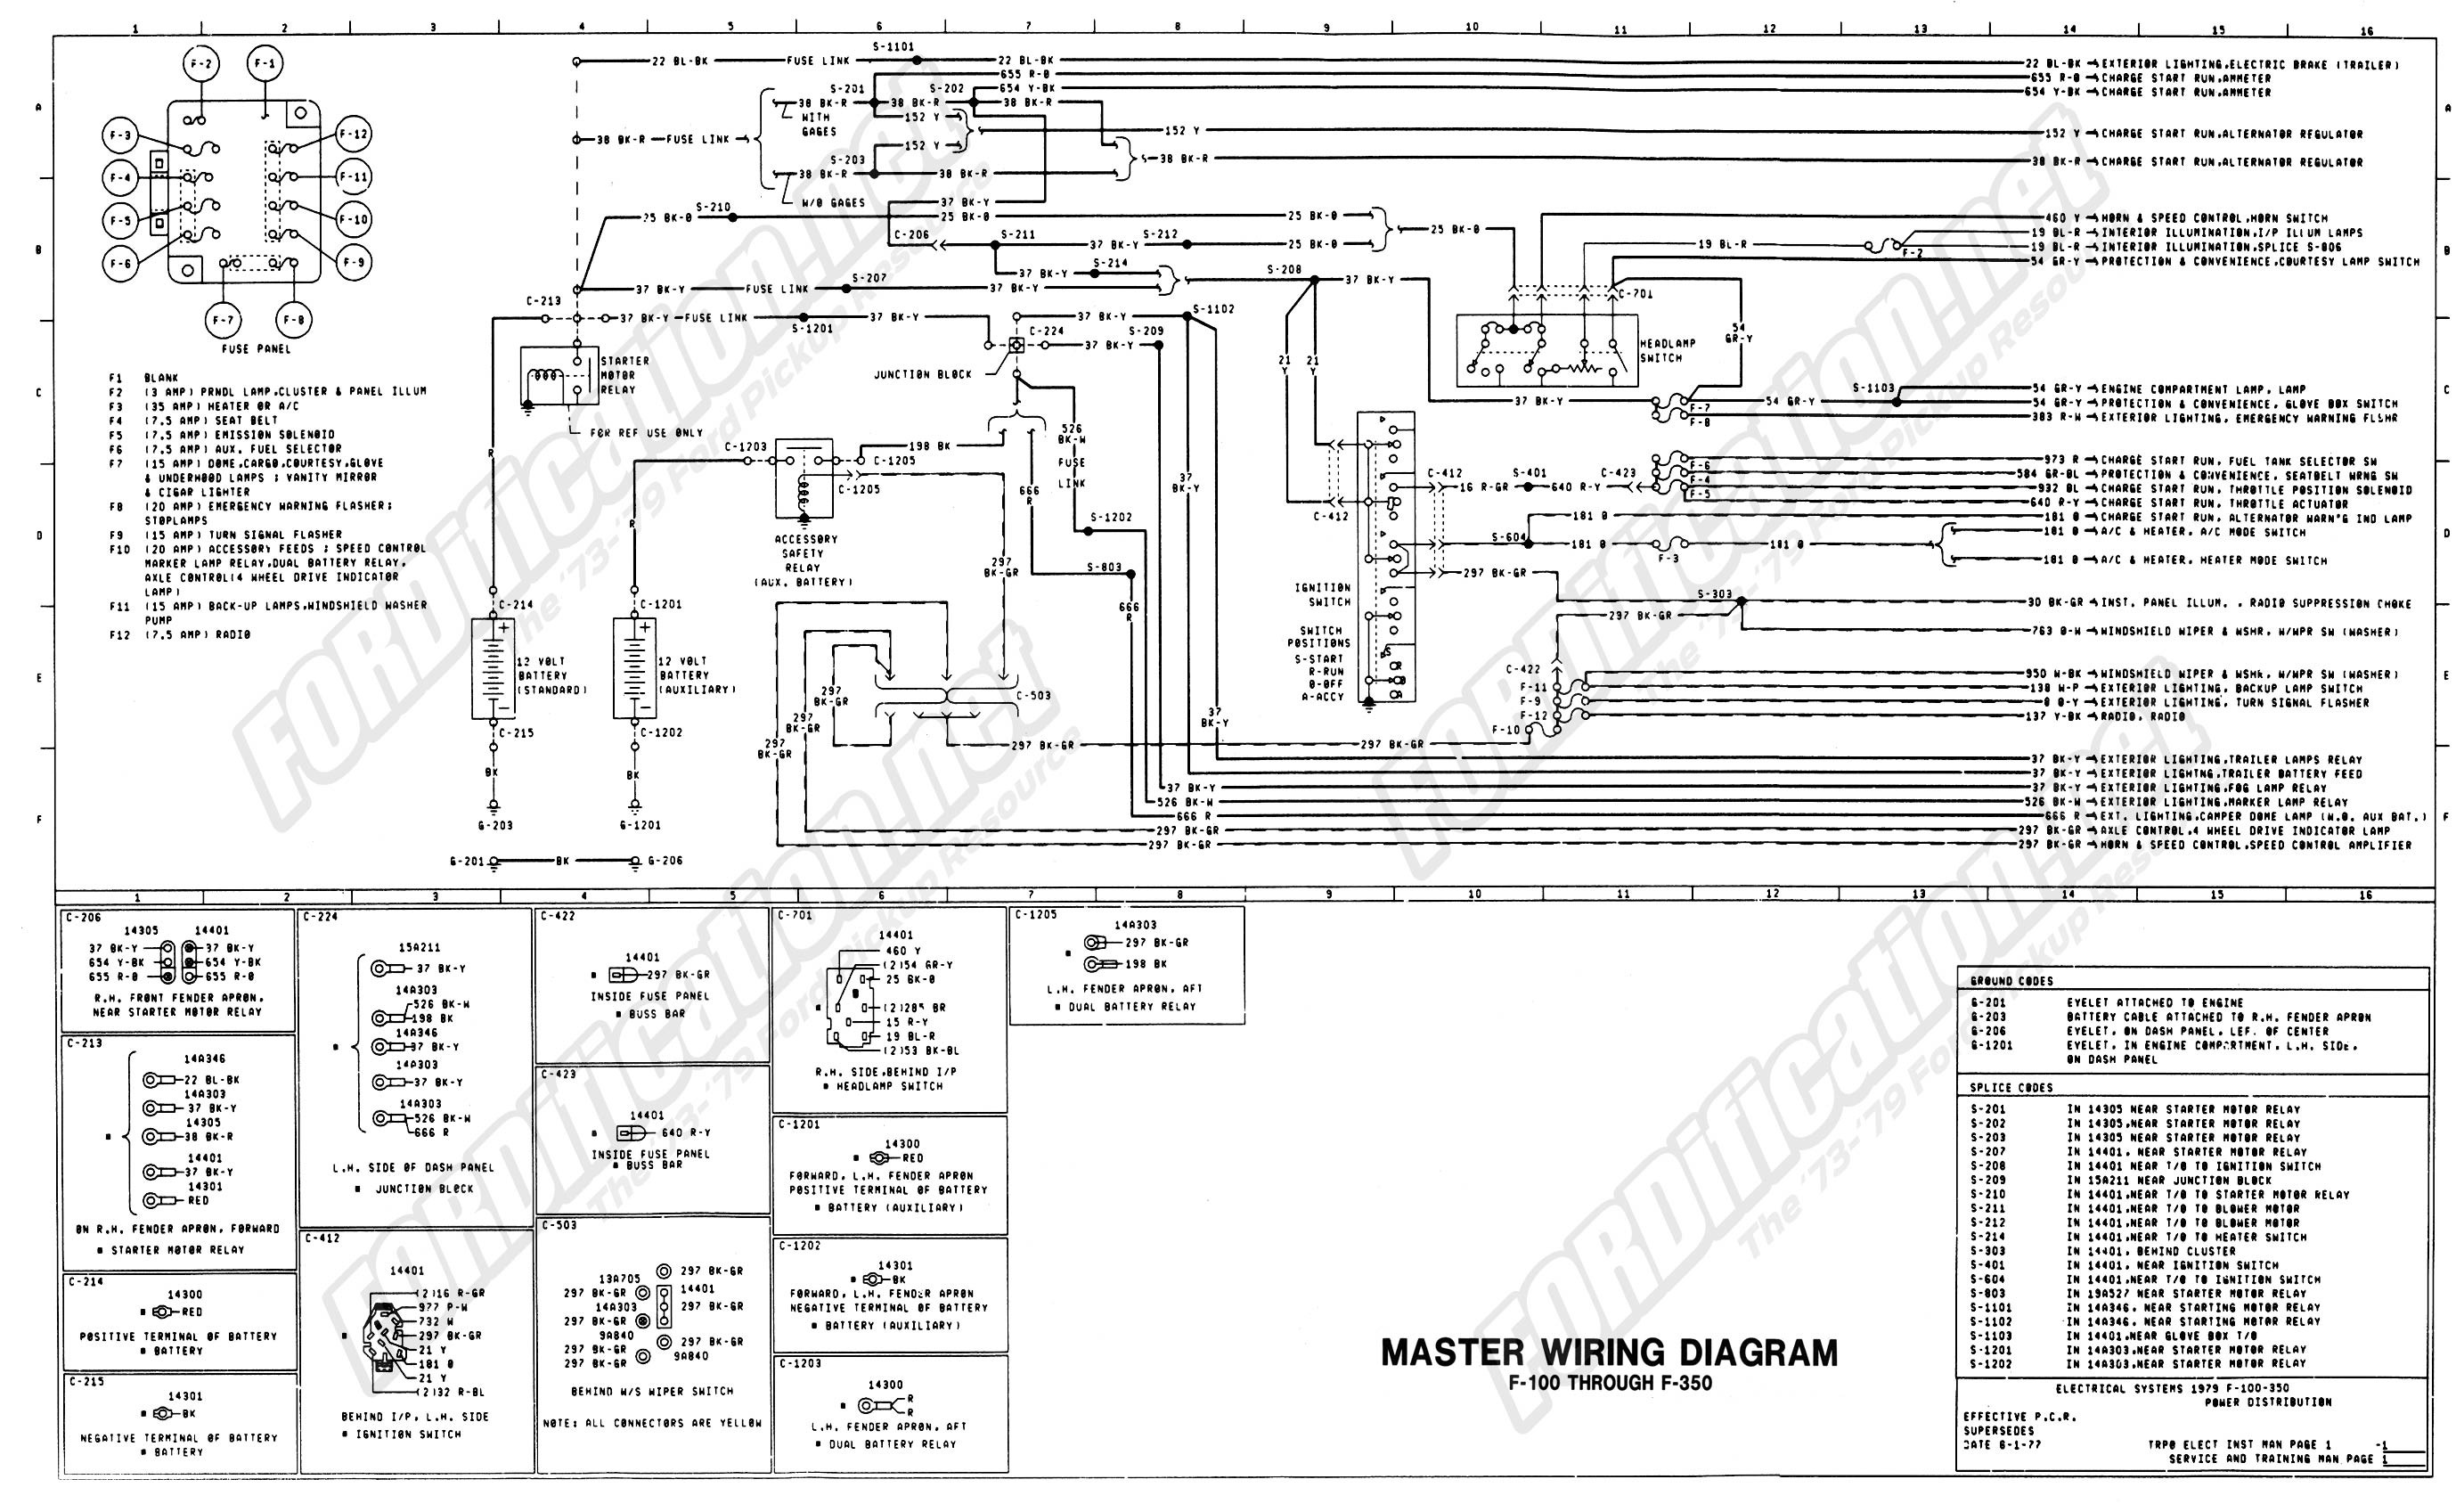 1970 torino headlight switch wiring diagram